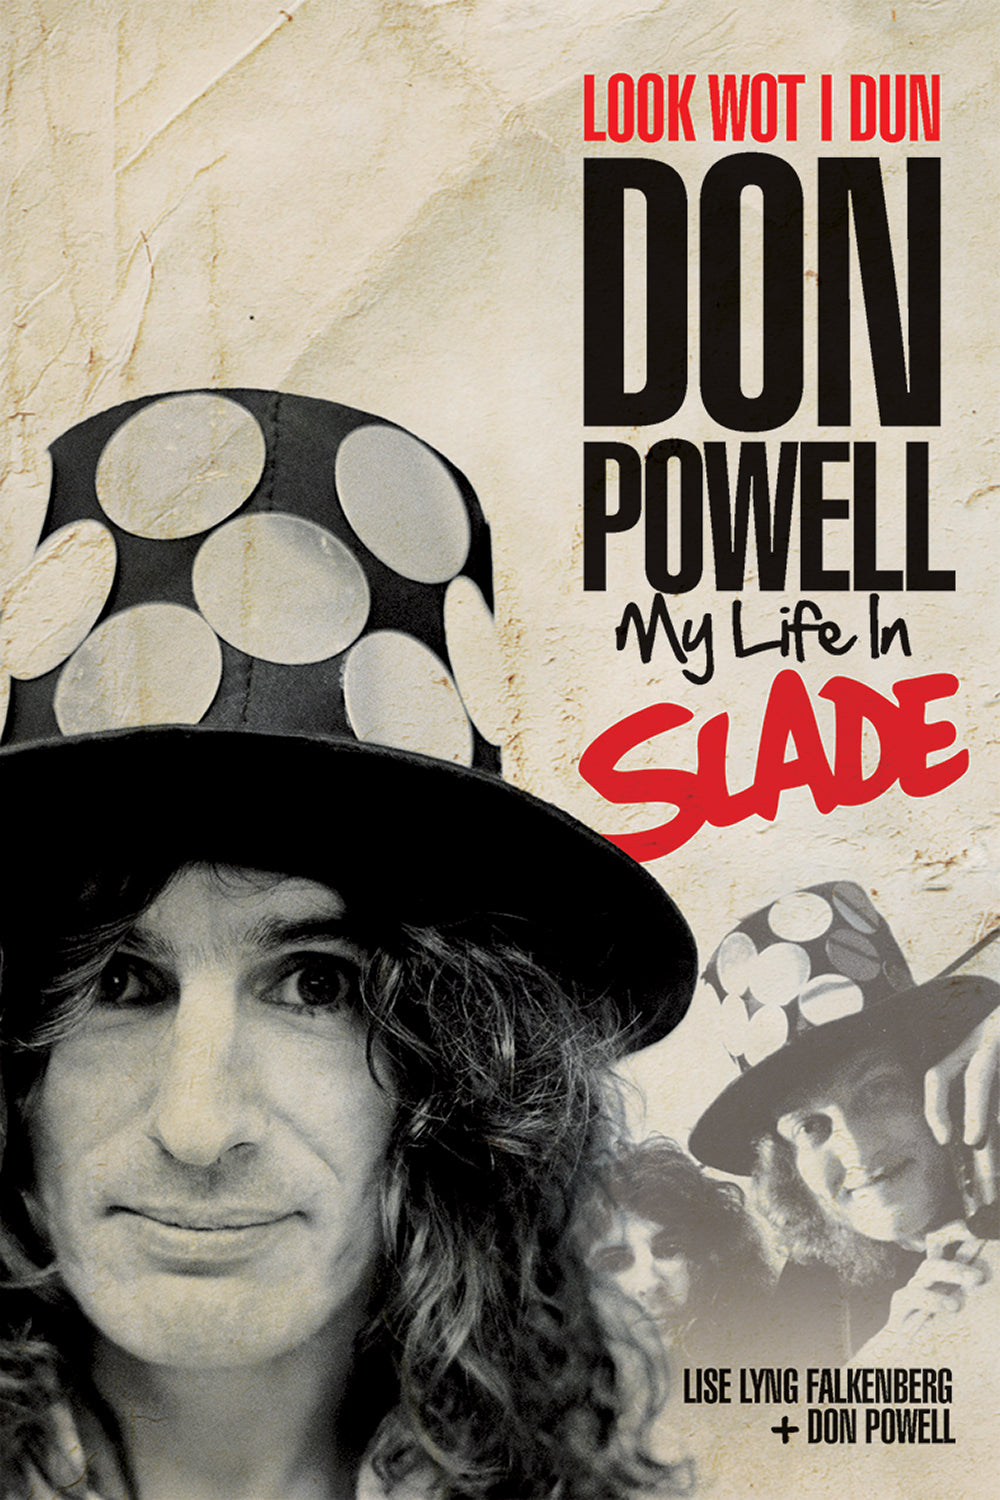 Look Wot I Dun: My Life in Slade - UPDATED EDITION